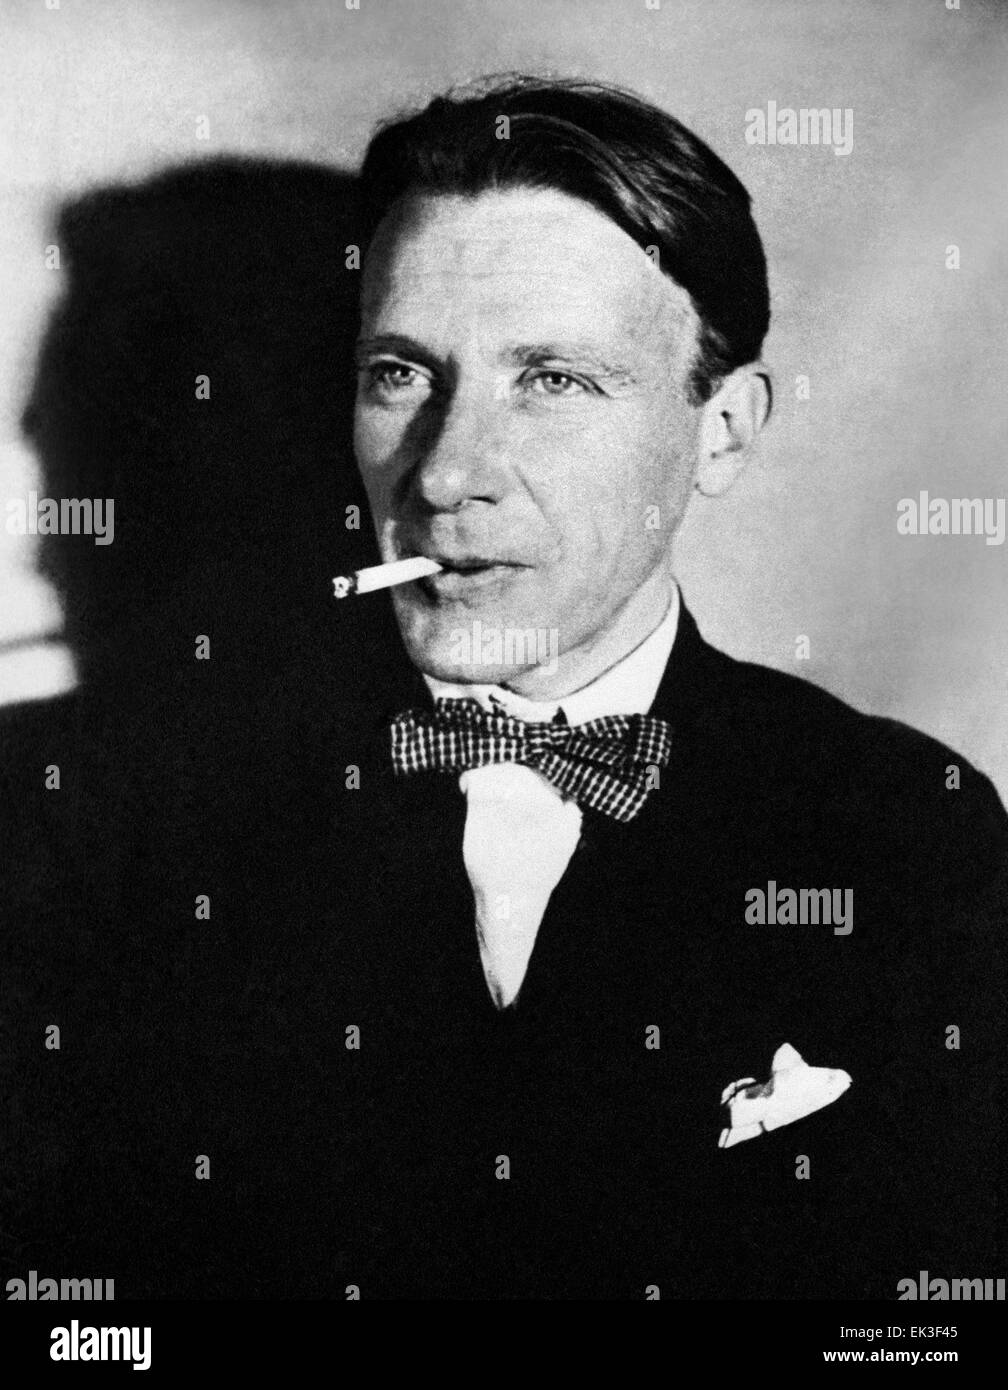 Moscow. USSR. Russian writer Mikhail Bulgakov 1891-1940. Reproduction. - Stock Image